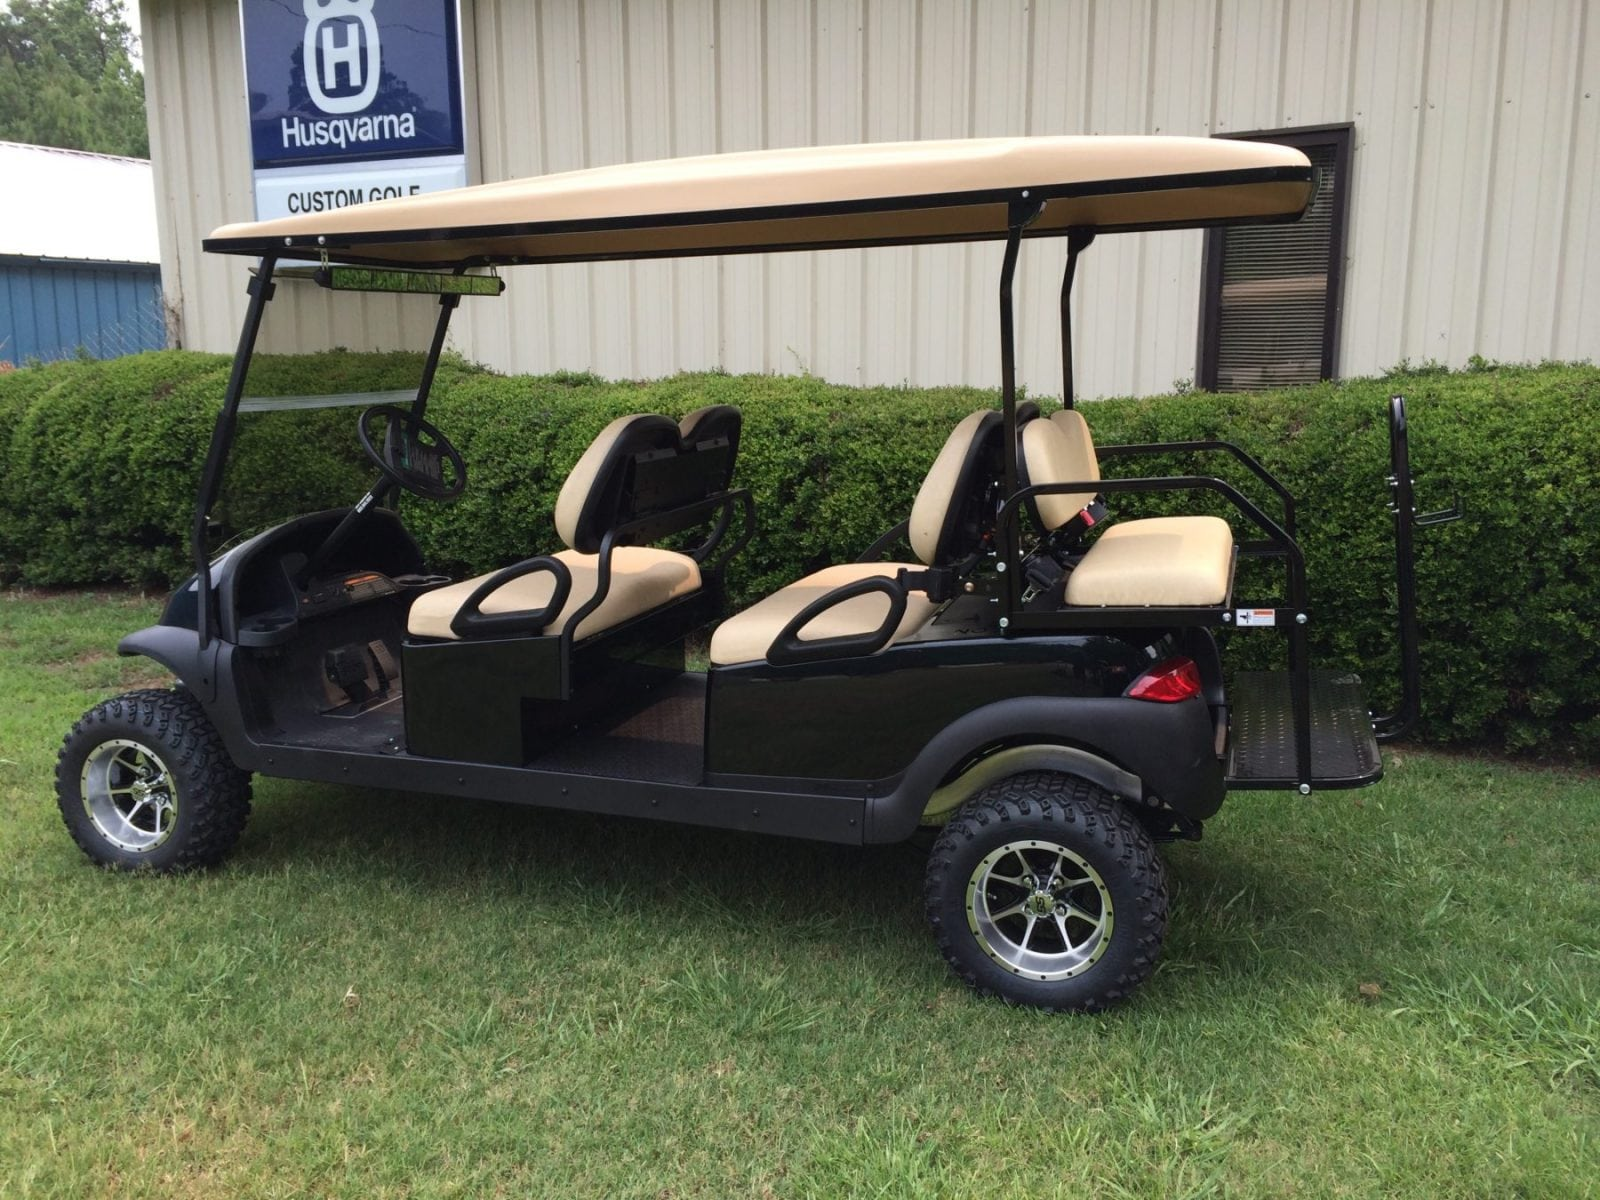 Build Your Own Golf Cart Kit >> Black Six Passenger Lifted Club Car Precedent - Custom Golf Carts Columbia | Sales, Services & Parts